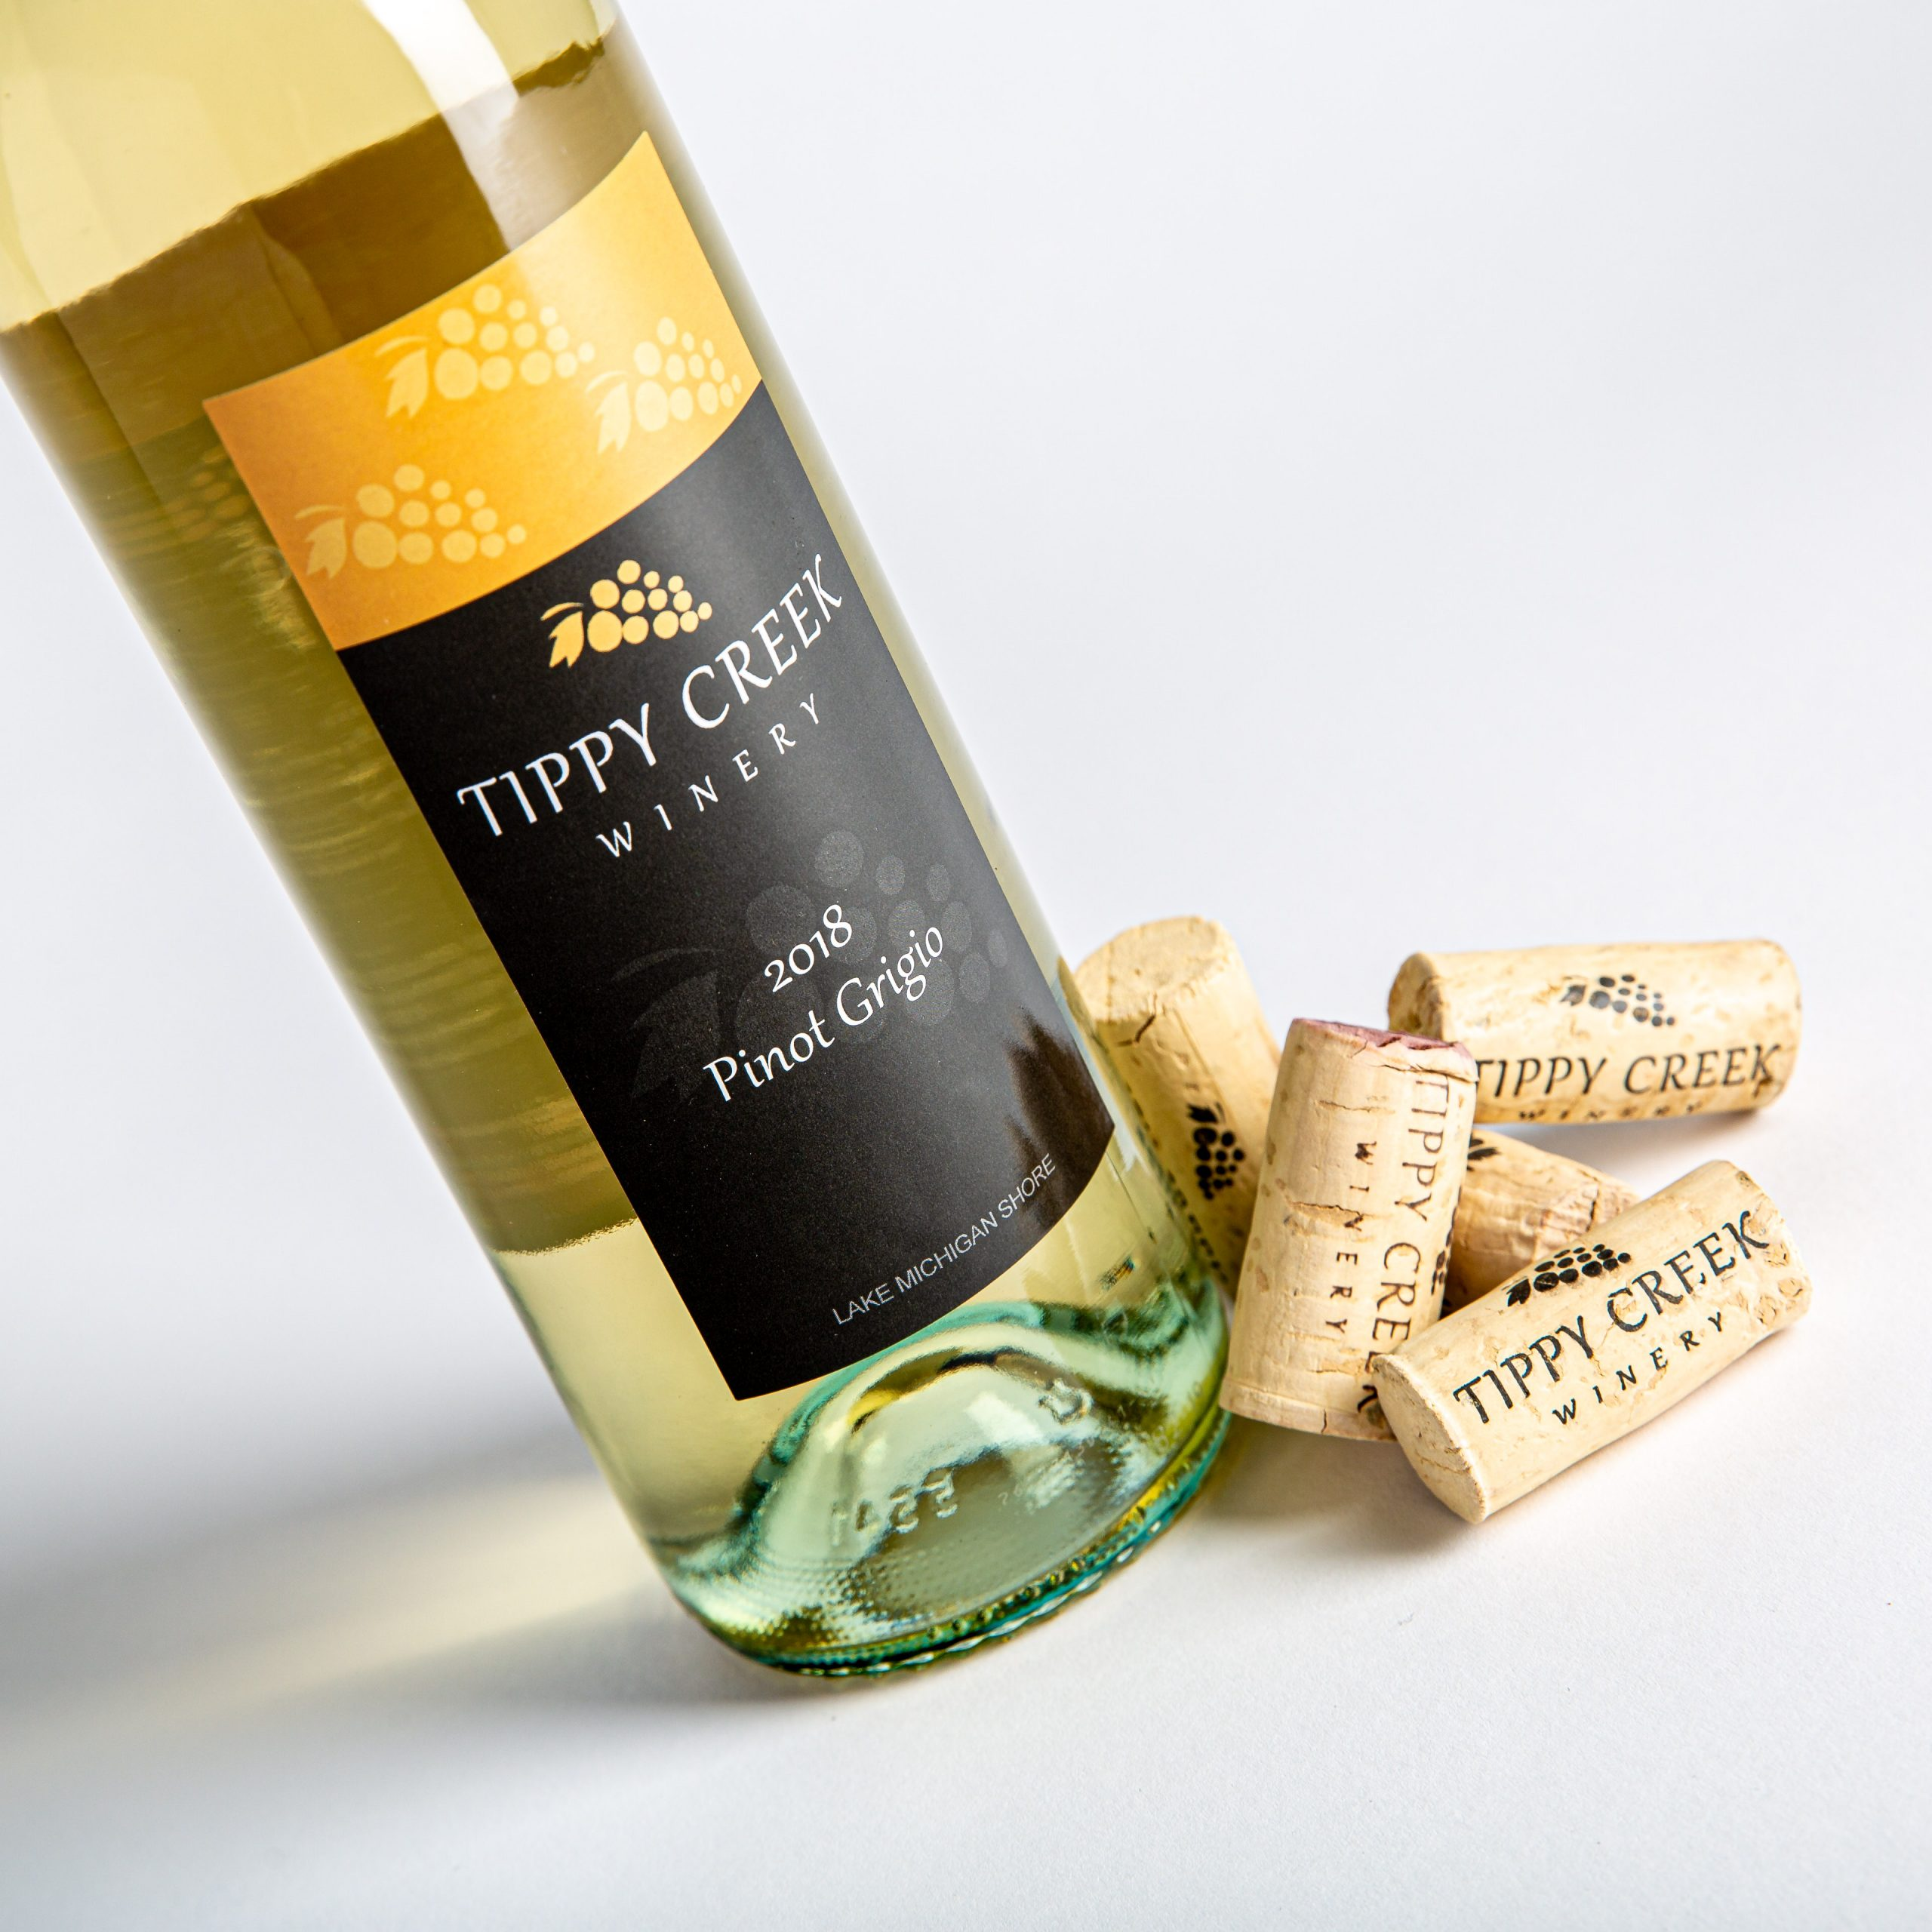 Pinot Grigio Wine by Tippy Creek Winery